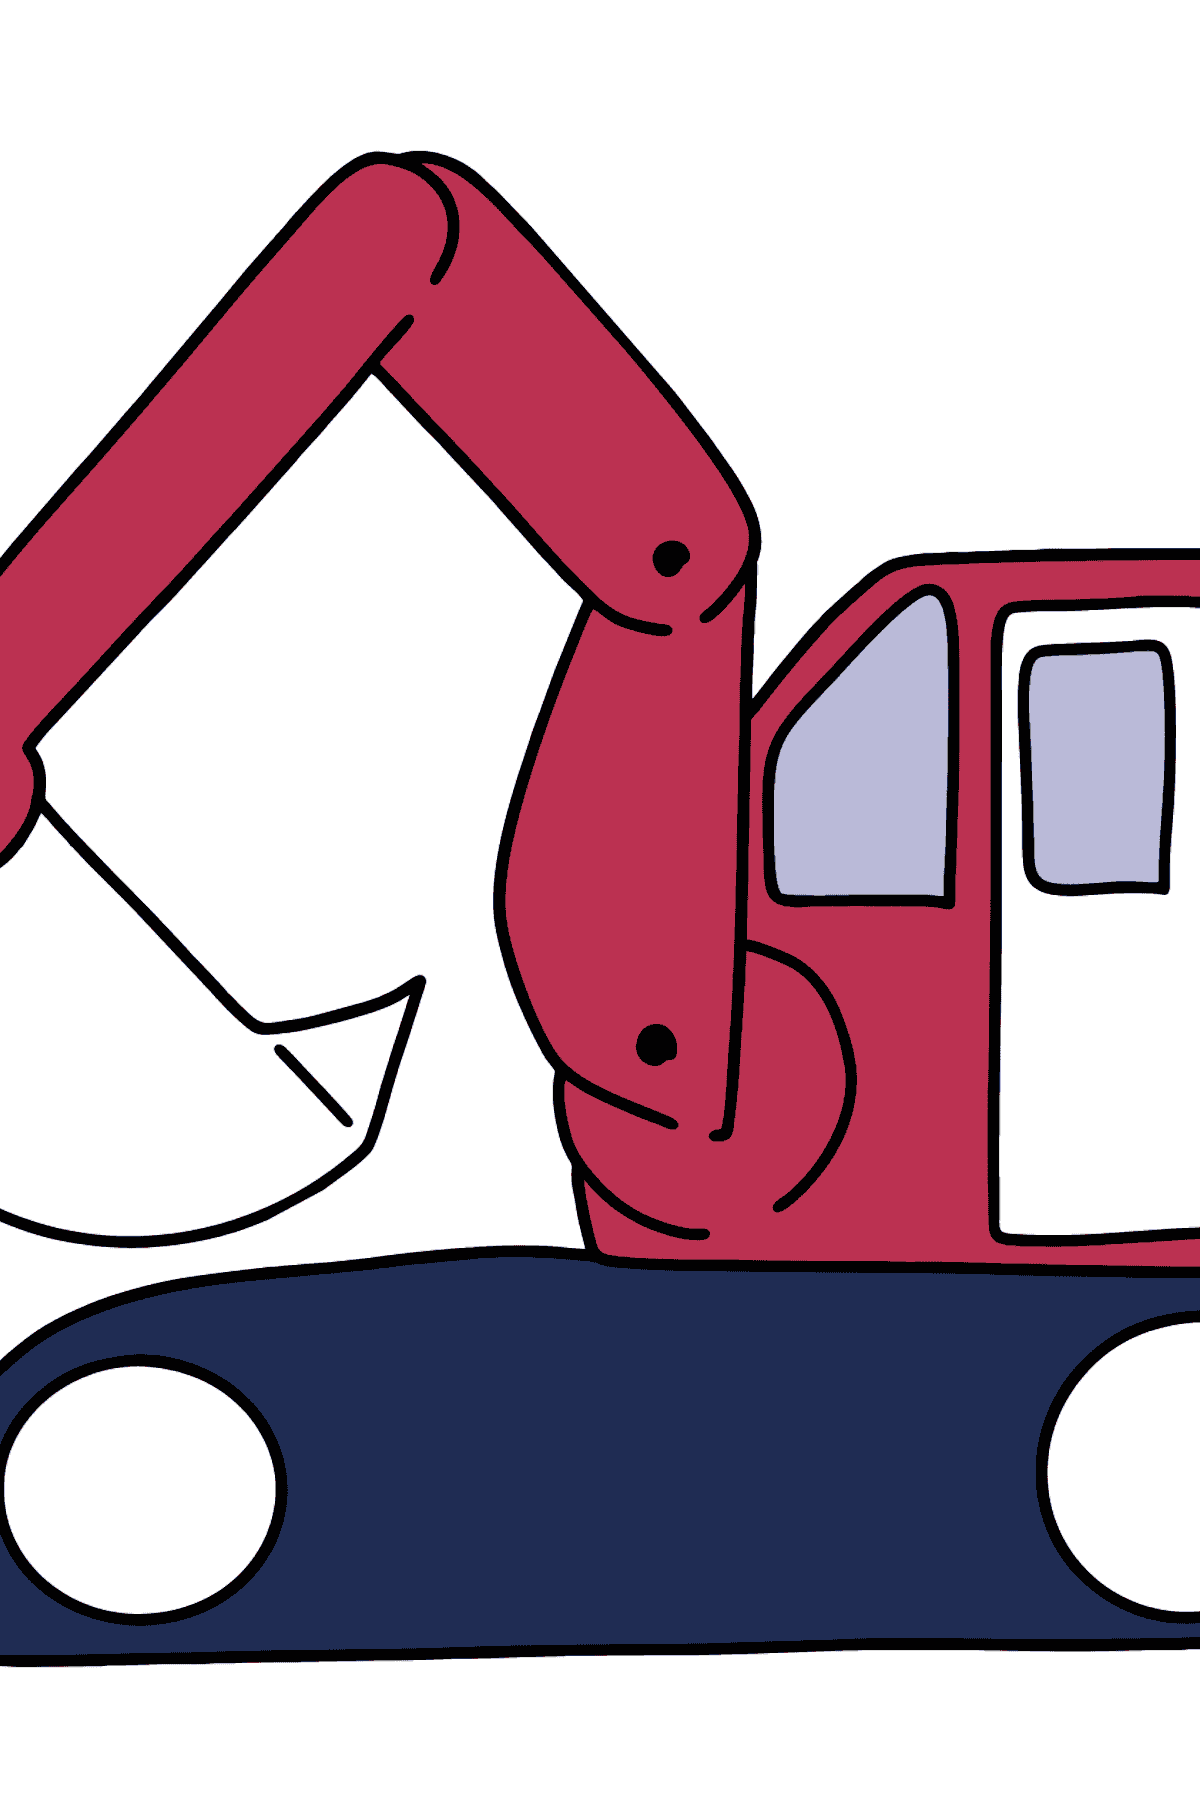 Tractor excavator coloring pages for kids - Coloring Pages for Kids